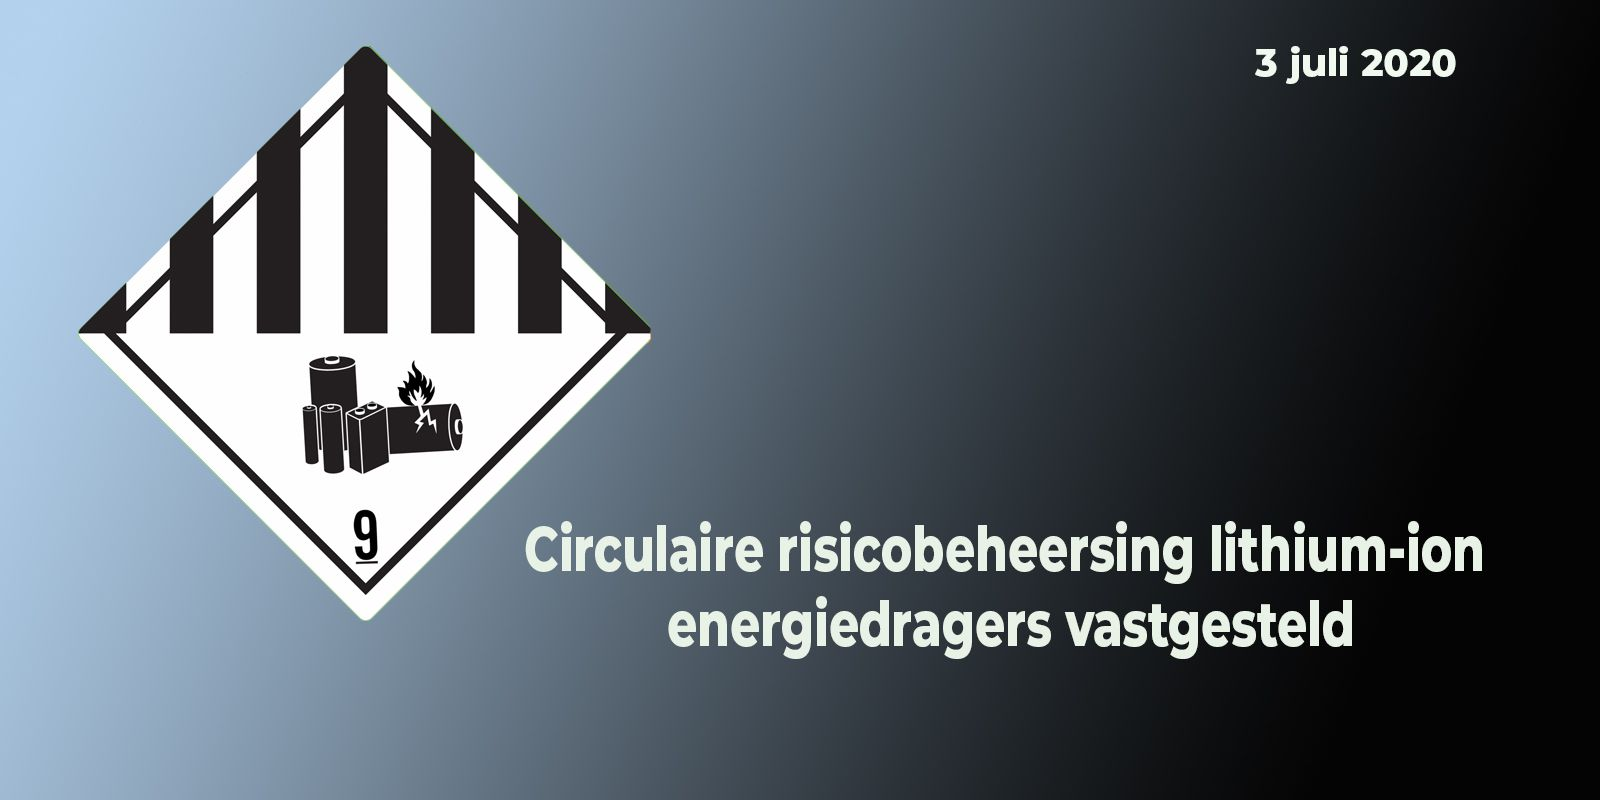 images/NIEUWSIMAGES/HEADERS/03-07-2020 - Circulaire Lithium.jpg